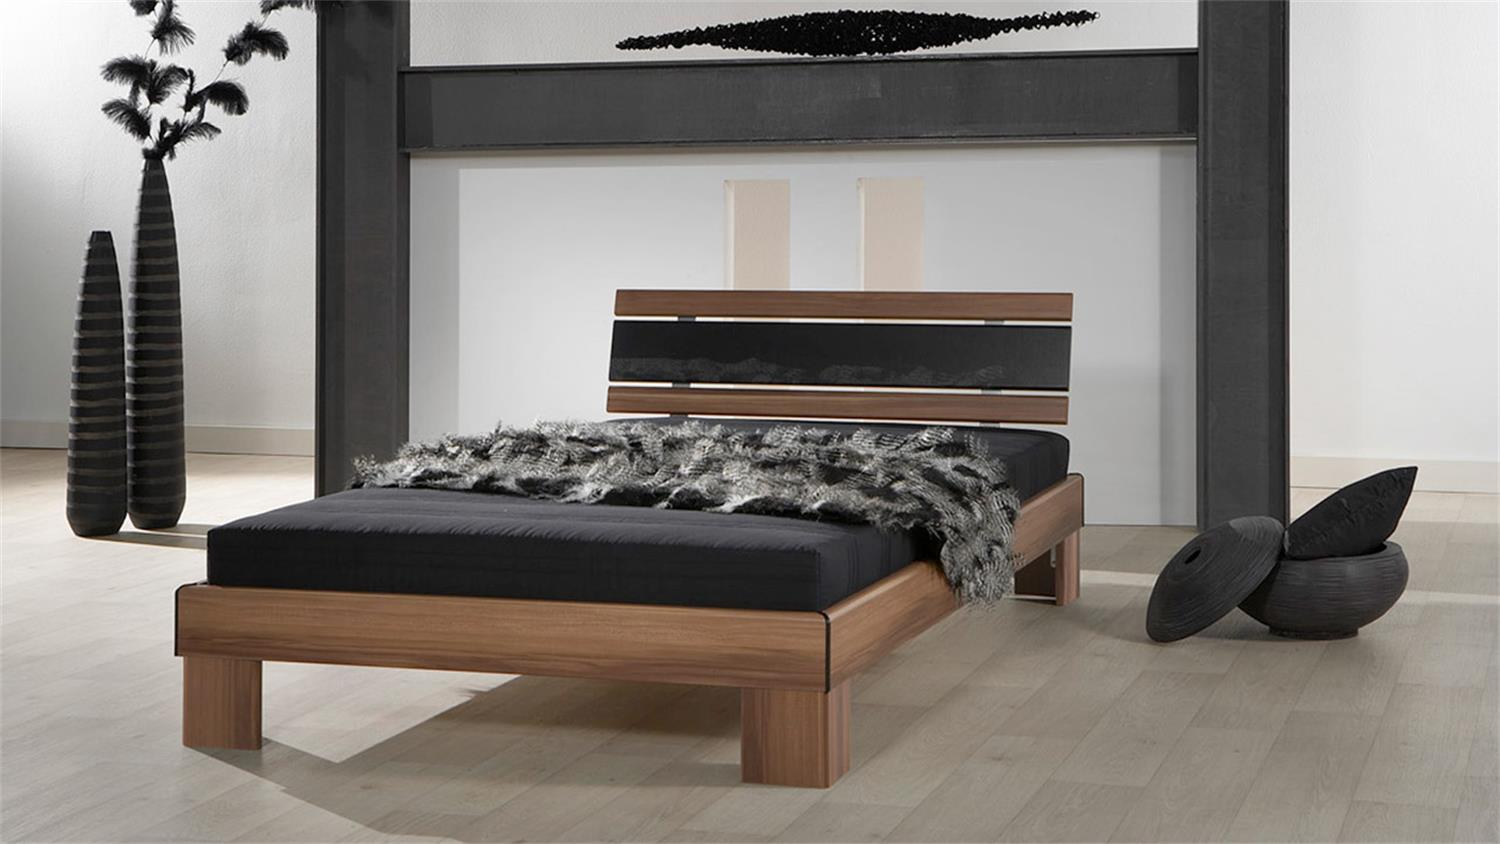 futonbett rhone 120x200 nussbaum mit matratze und rollrost. Black Bedroom Furniture Sets. Home Design Ideas